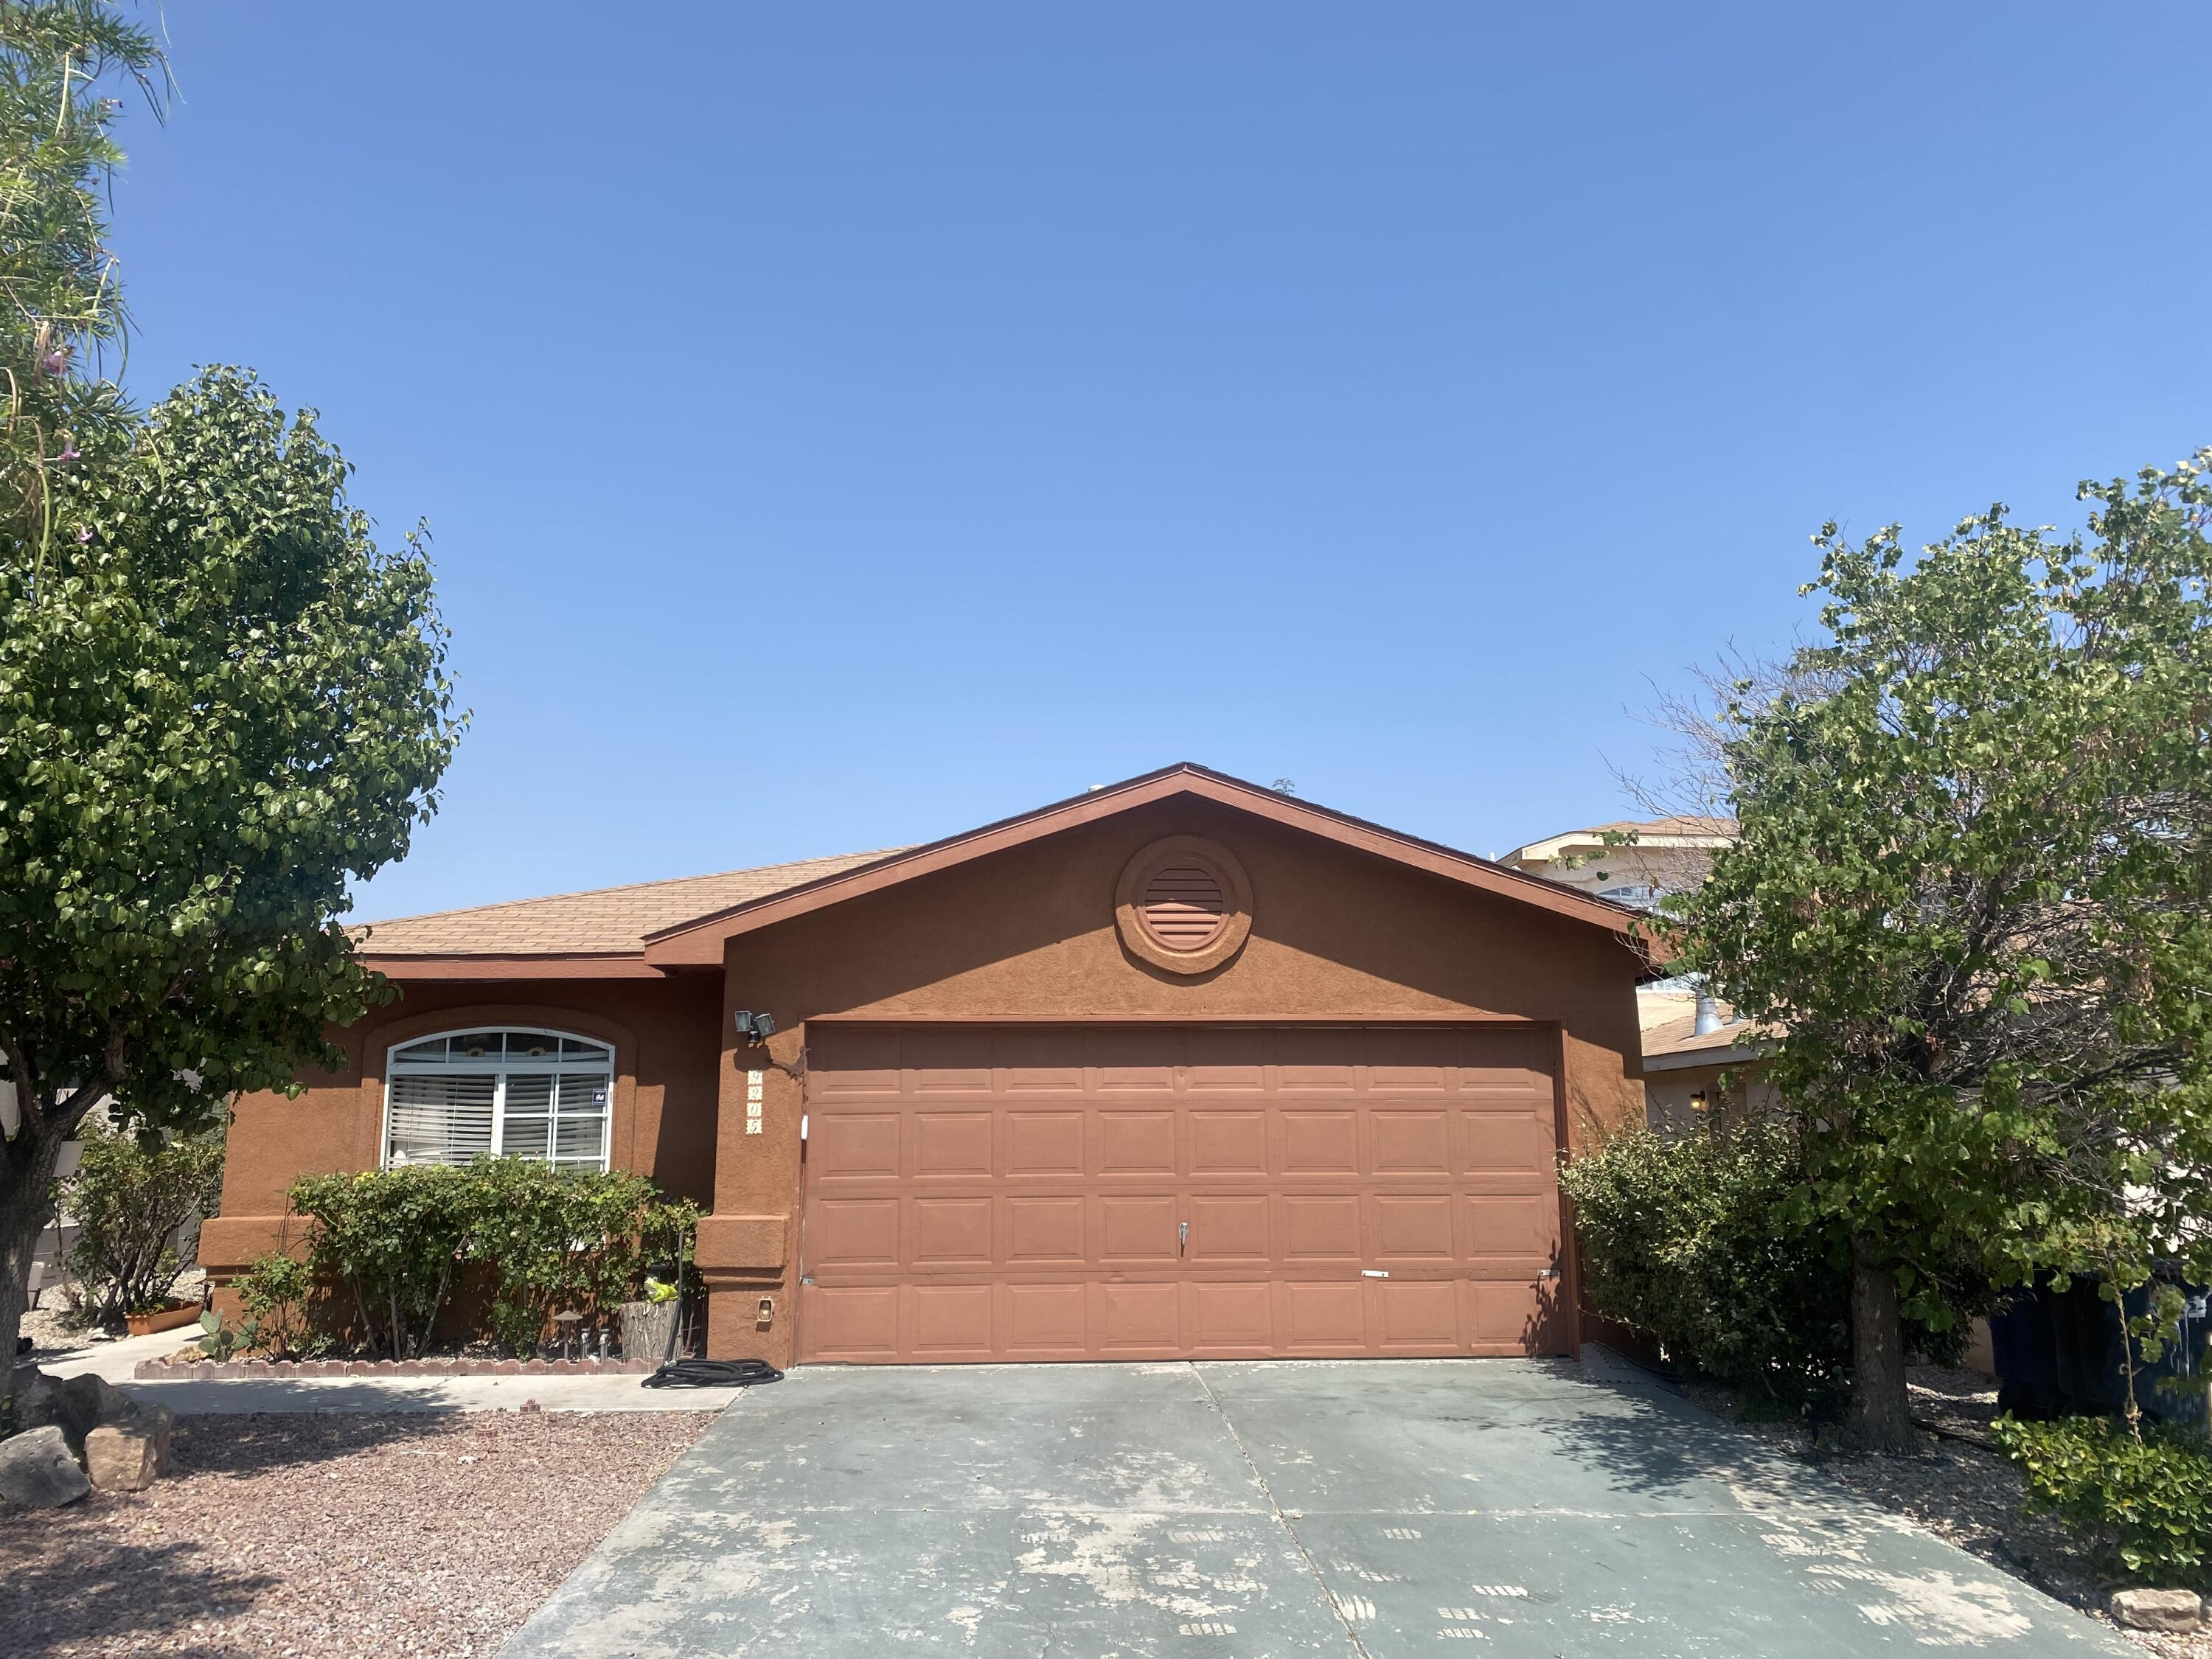 This single Story has 4 bedroom's, spacious living room, STAINLESS STEEL appliances and Newly renovated kitchen, tile back-splash, fully landscaped with peach trees, planters, this home is ready to move in!!!